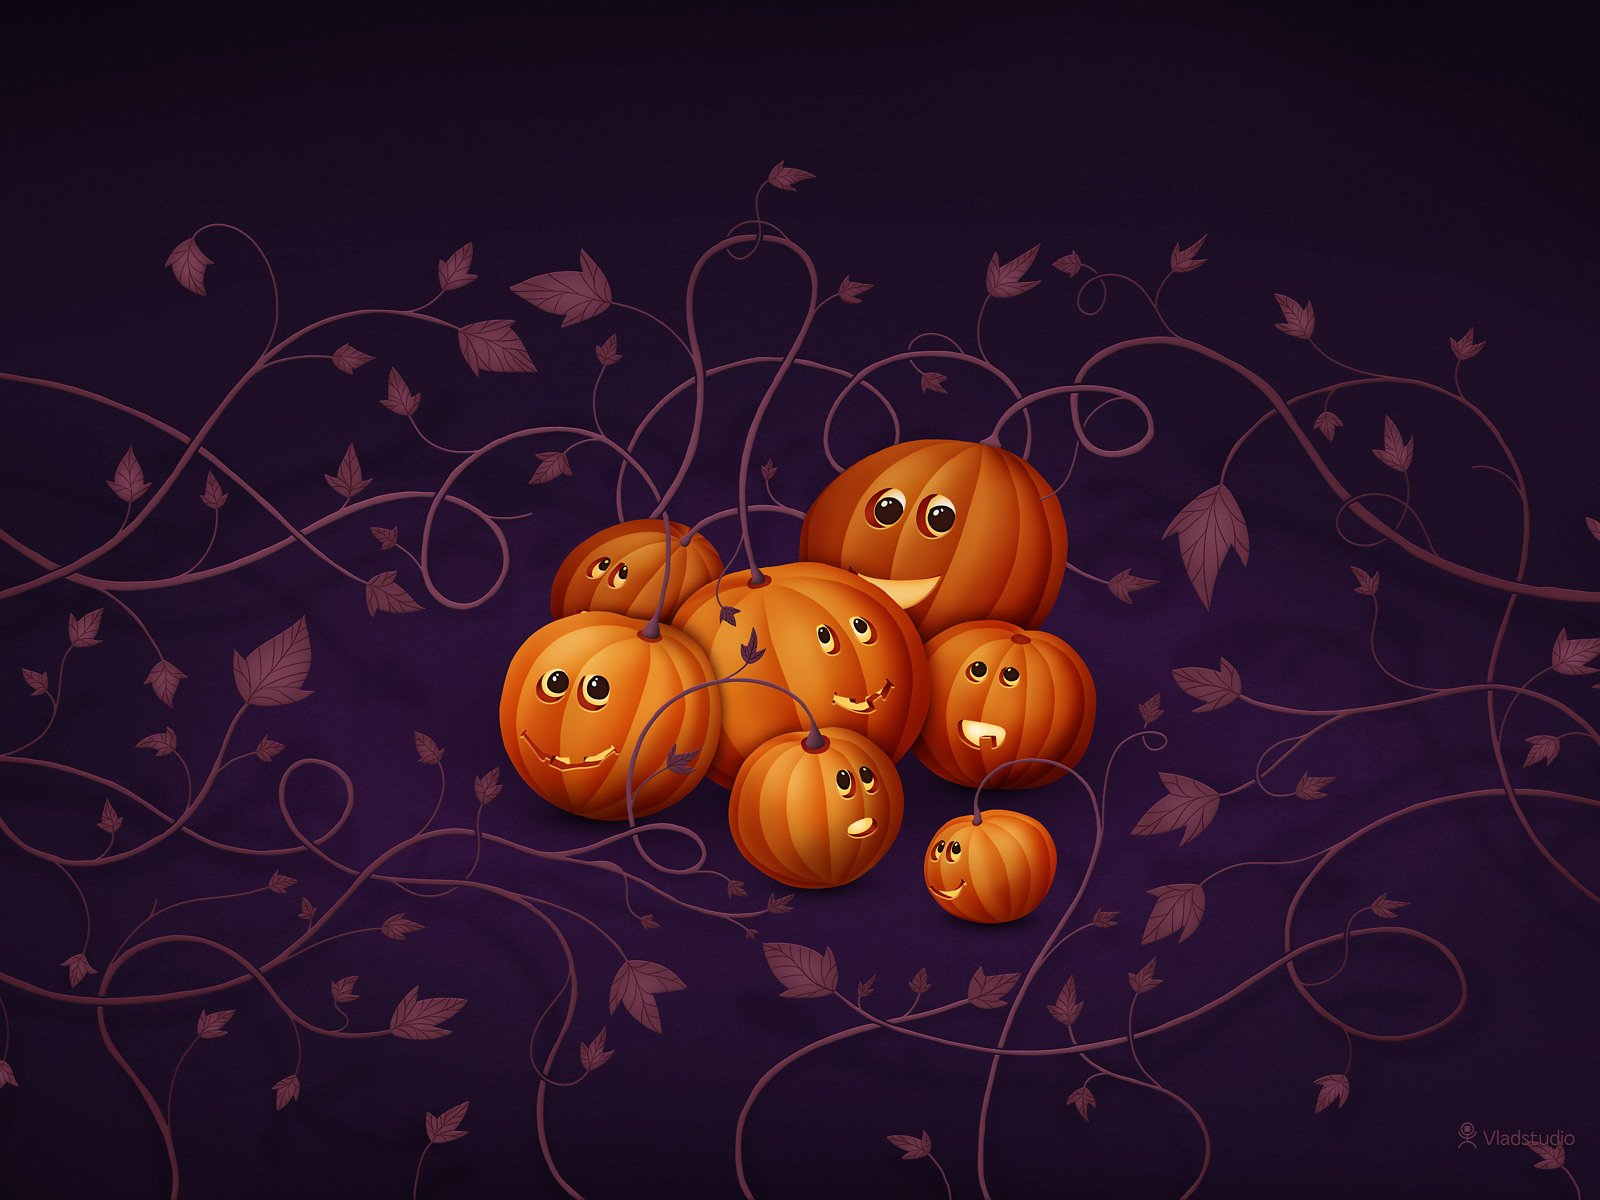 Scary Halloween 2012 HD Wallpapers Pumpkins Witches Spider Web 1600x1200